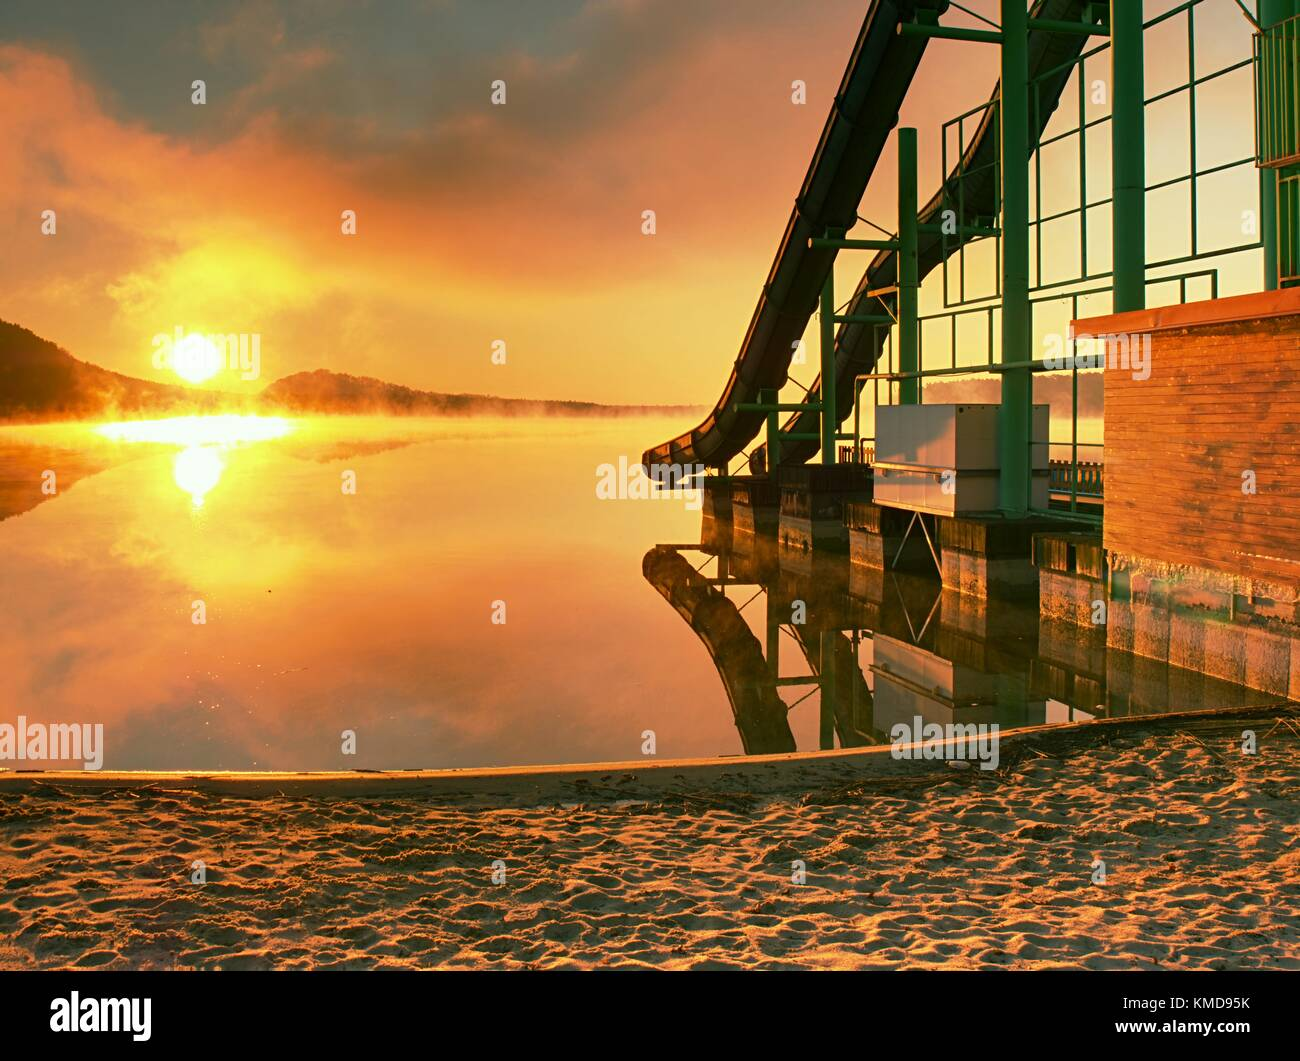 High steel tower with  sliding track on lake beach. Cold autumn morning with misty water level. End of season in - Stock Image